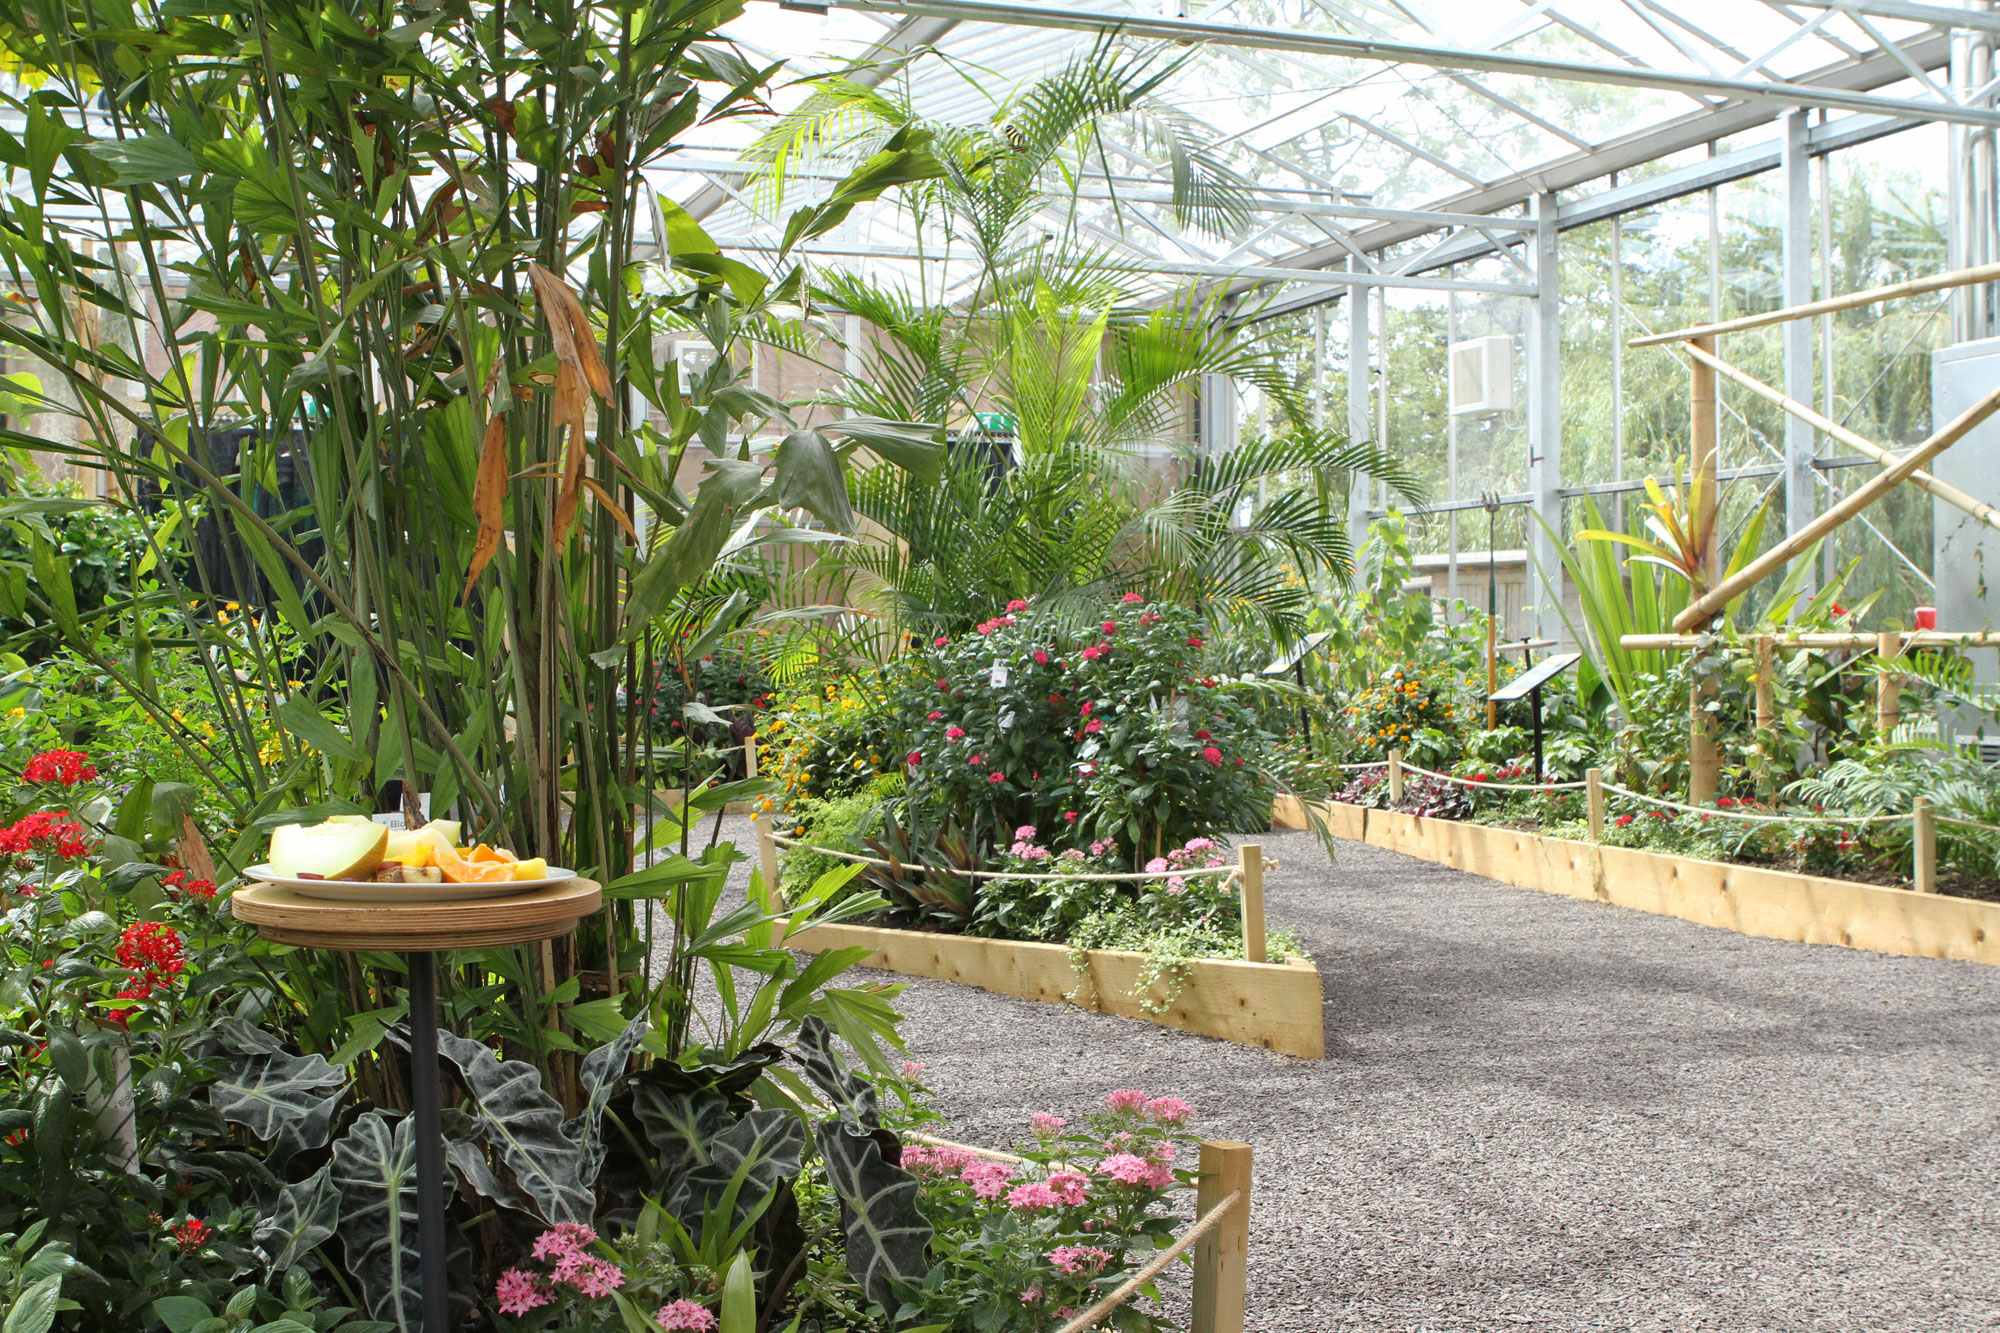 A flower bed to the left with a path to the right in a glass house.